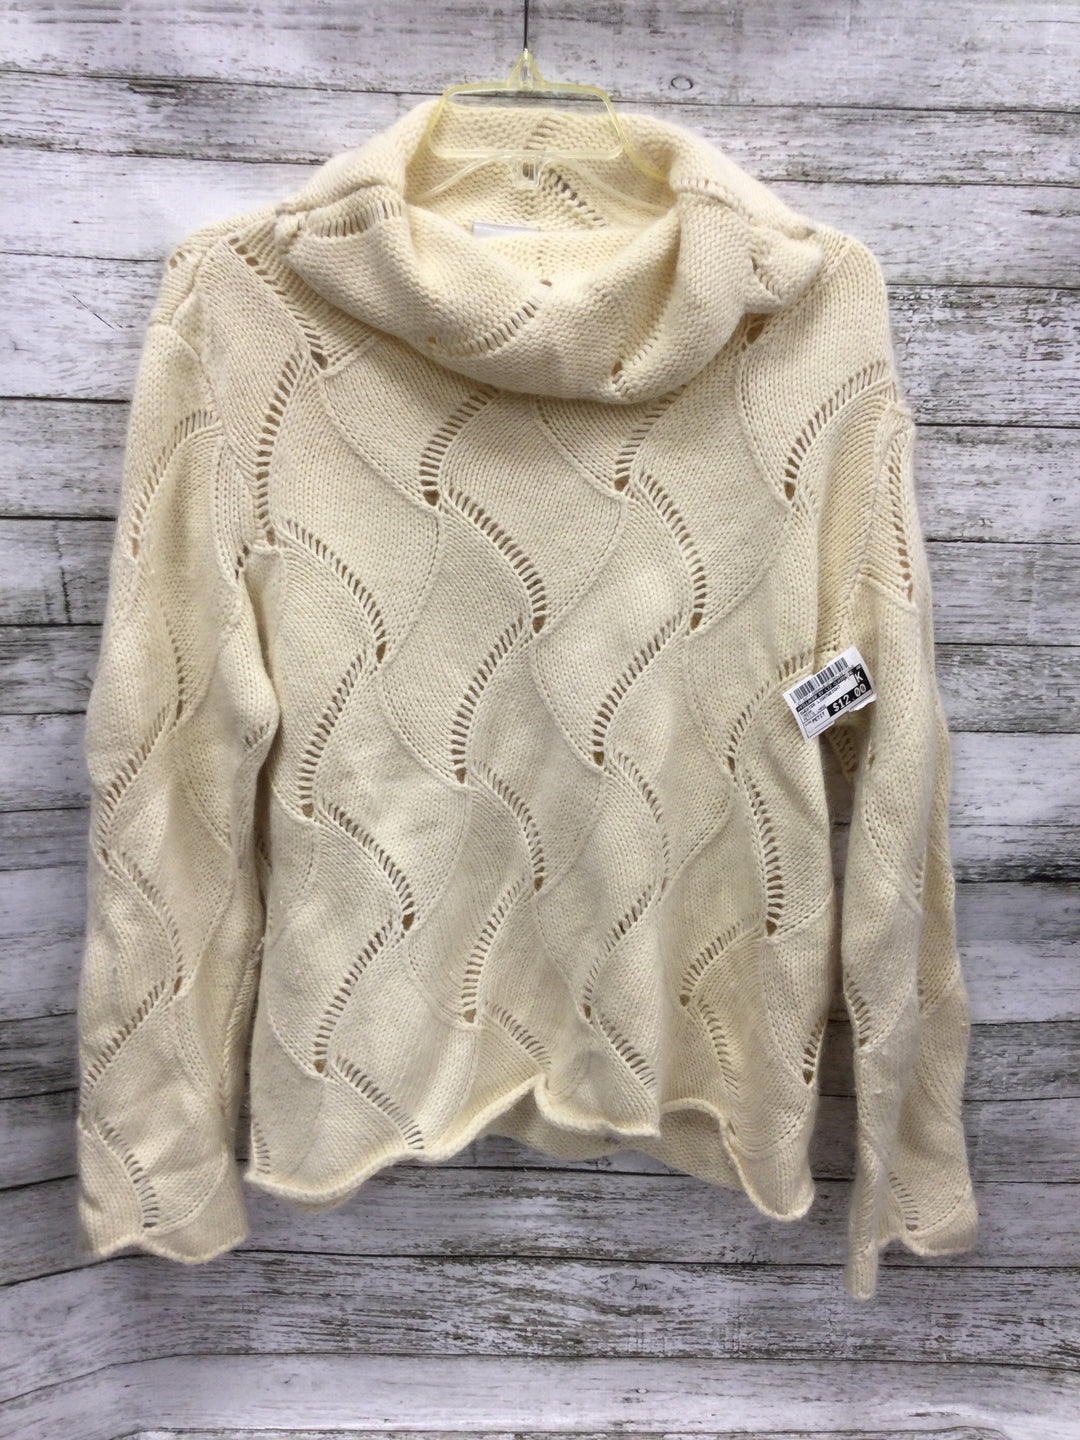 Primary Photo - brand: villager by liz claiborne , style: sweater lightweight , color: cream , size: petite large , sku: 127-3371-50594